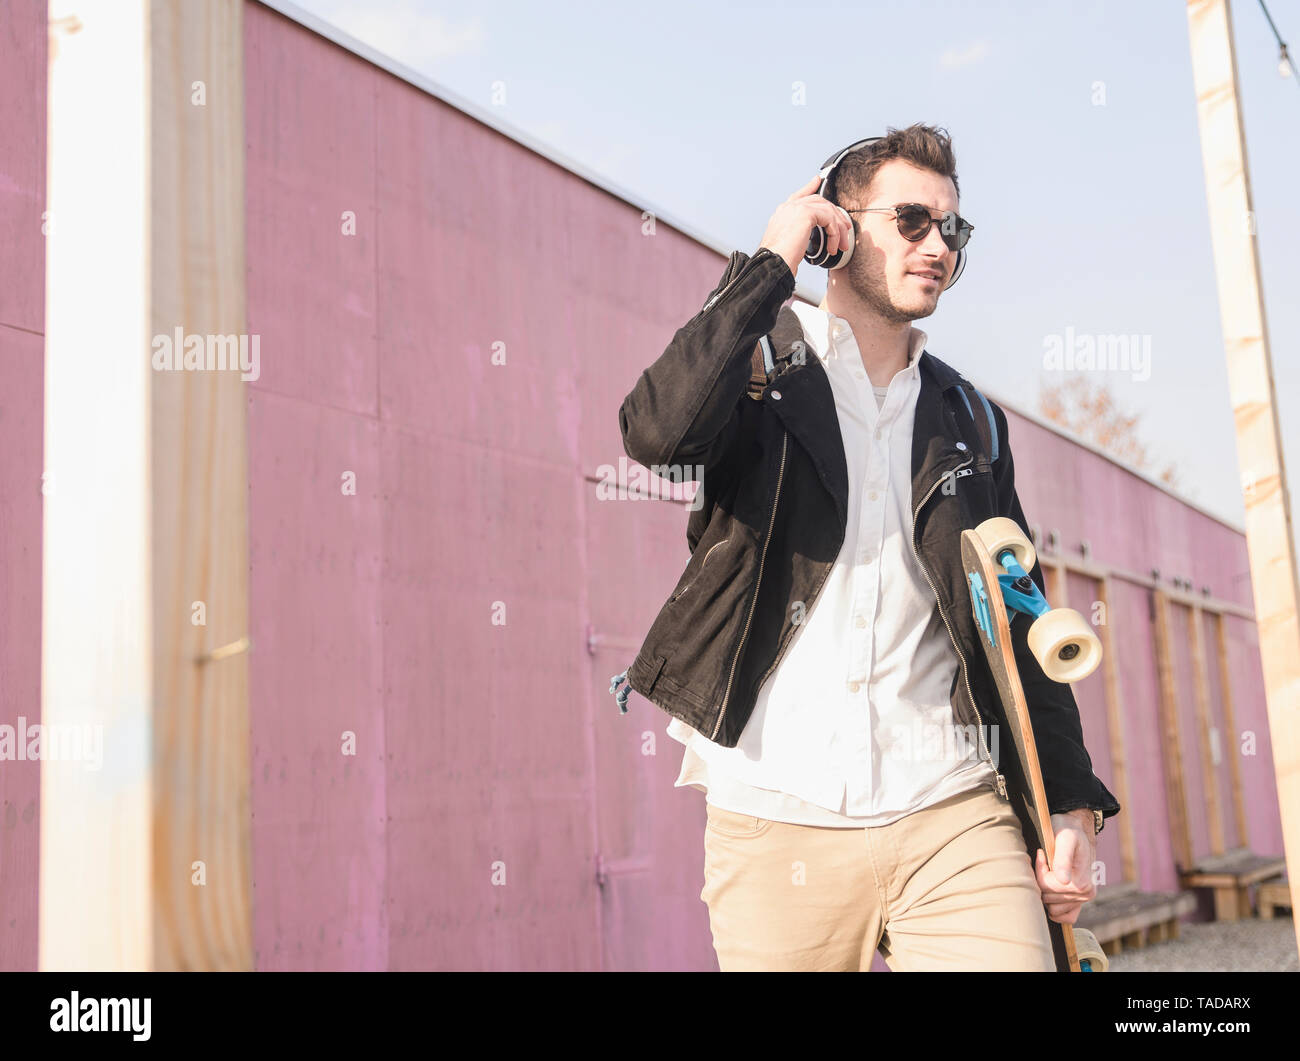 Young man with skatebaord and headphones on the move in the city - Stock Image